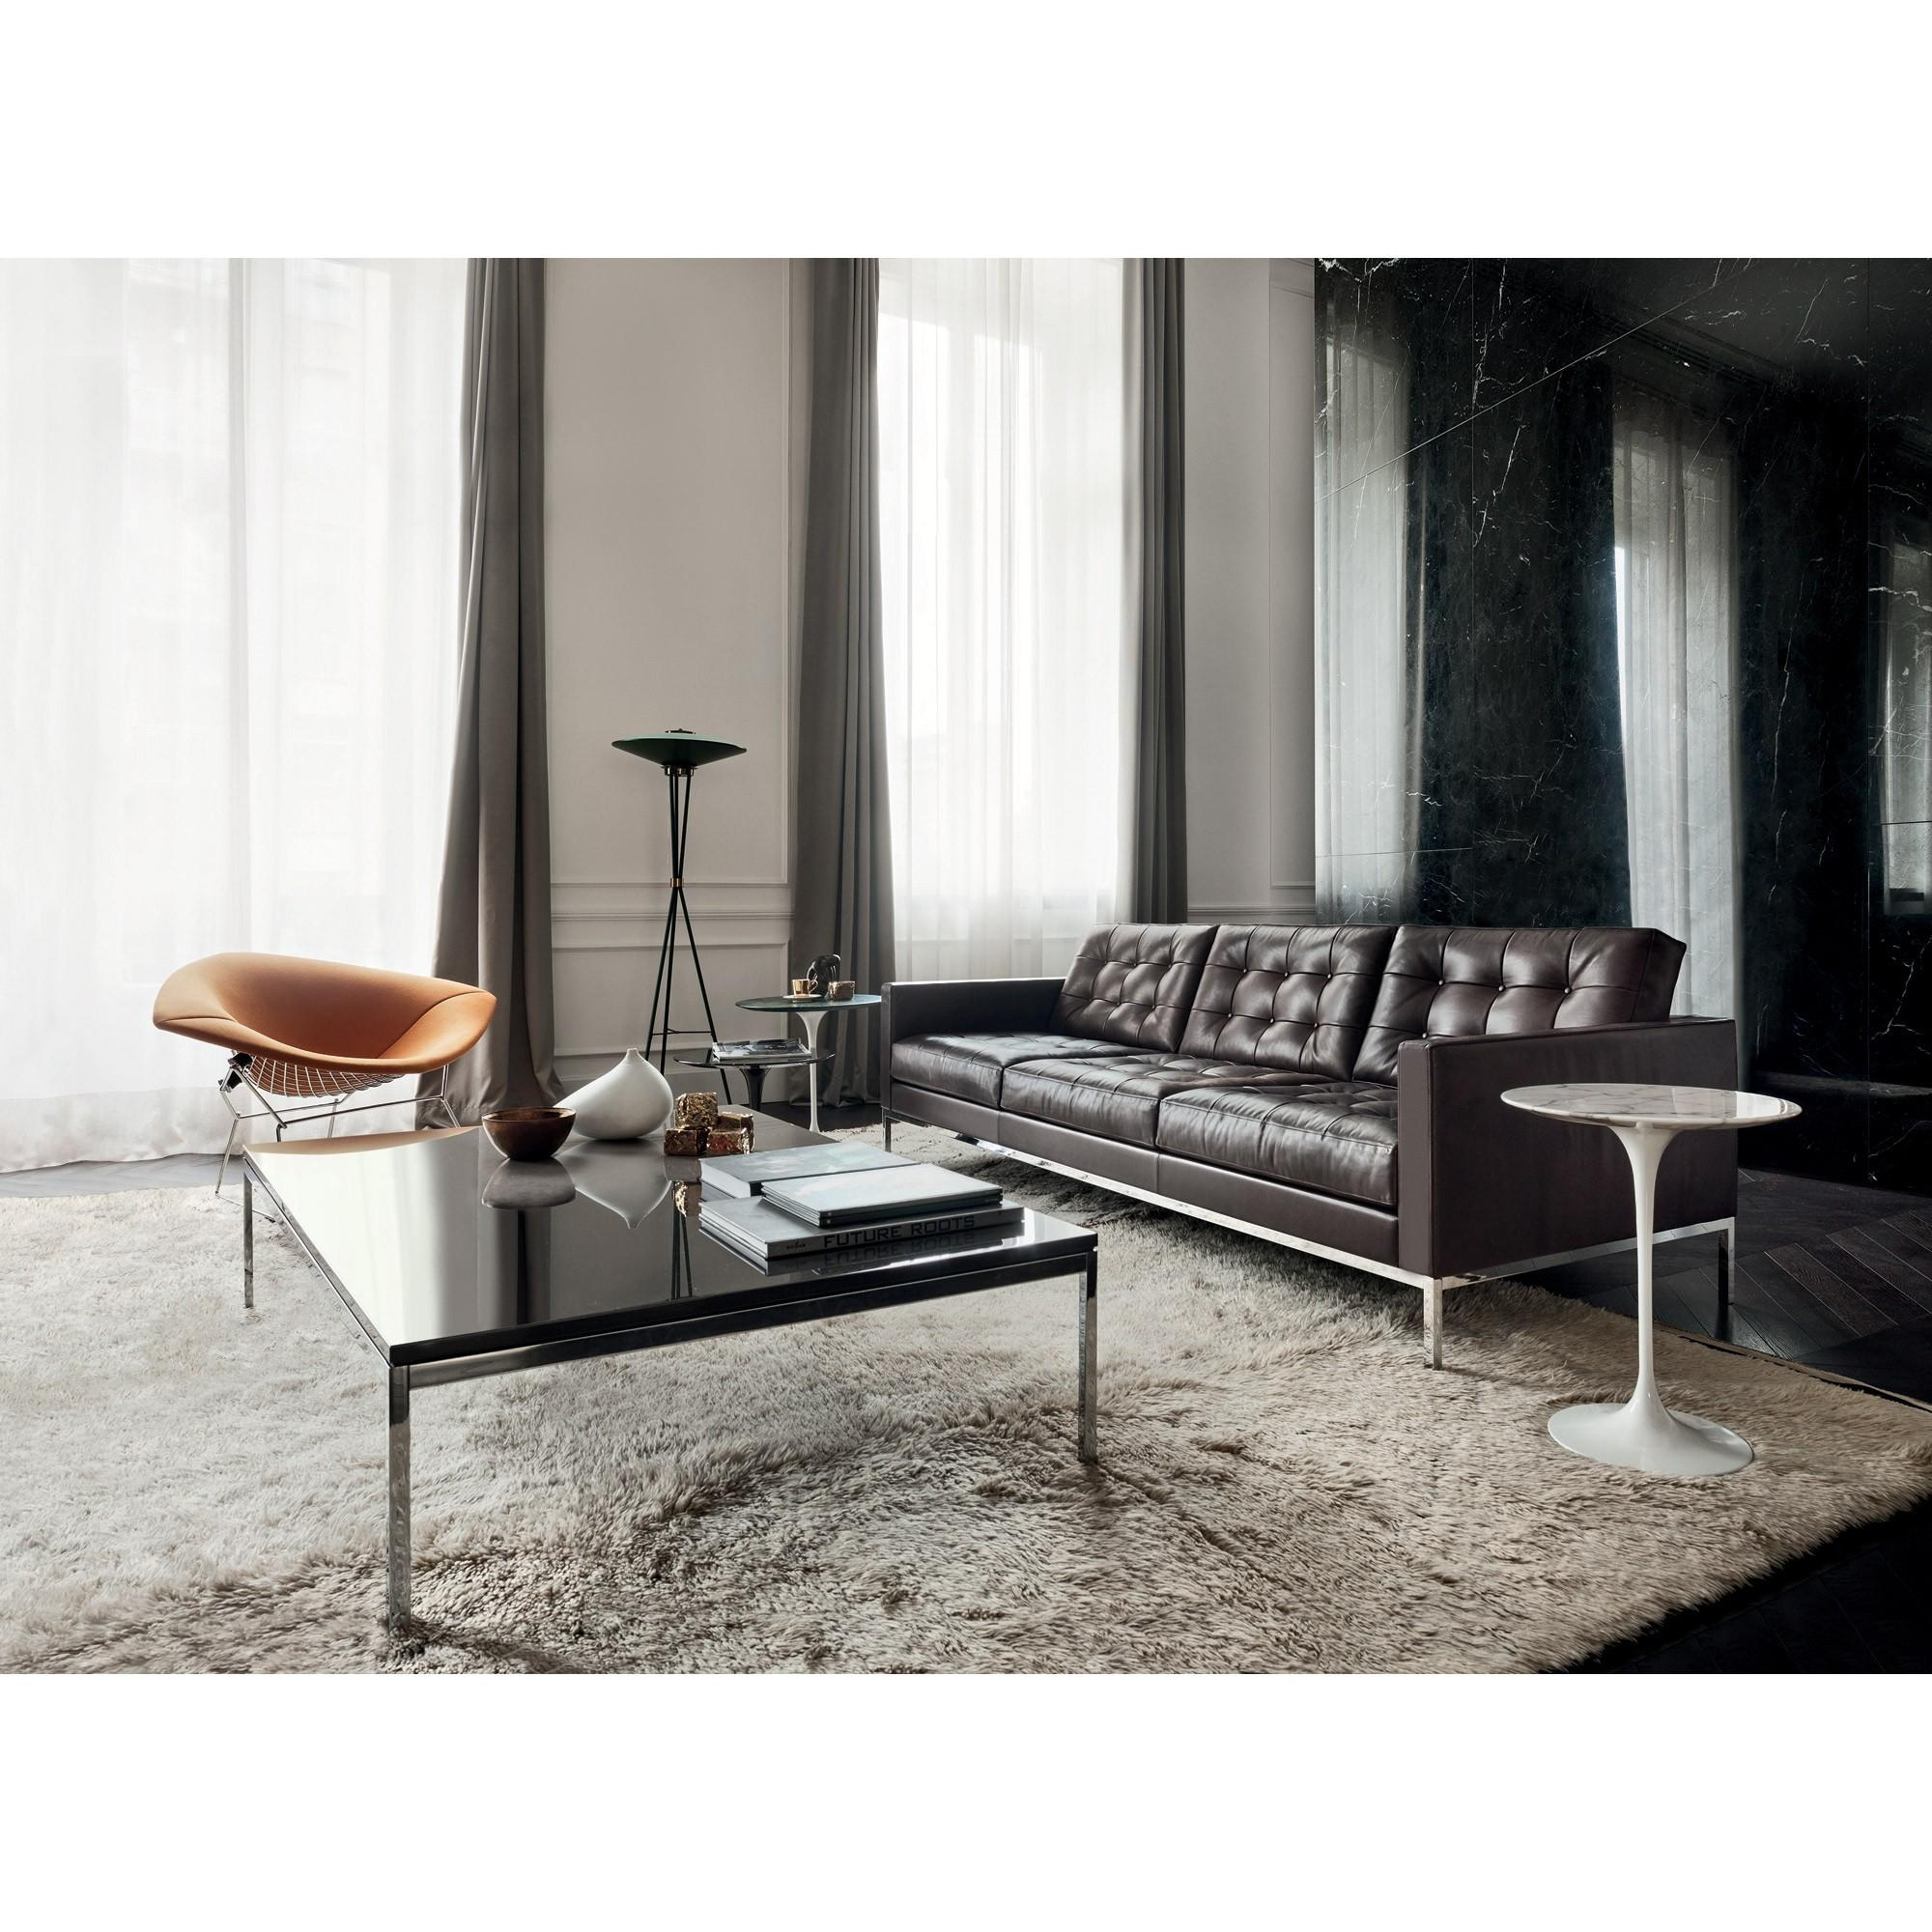 Florence Knoll 'relax' Sofa | Skandium Inside Florence Sofas (Image 5 of 20)